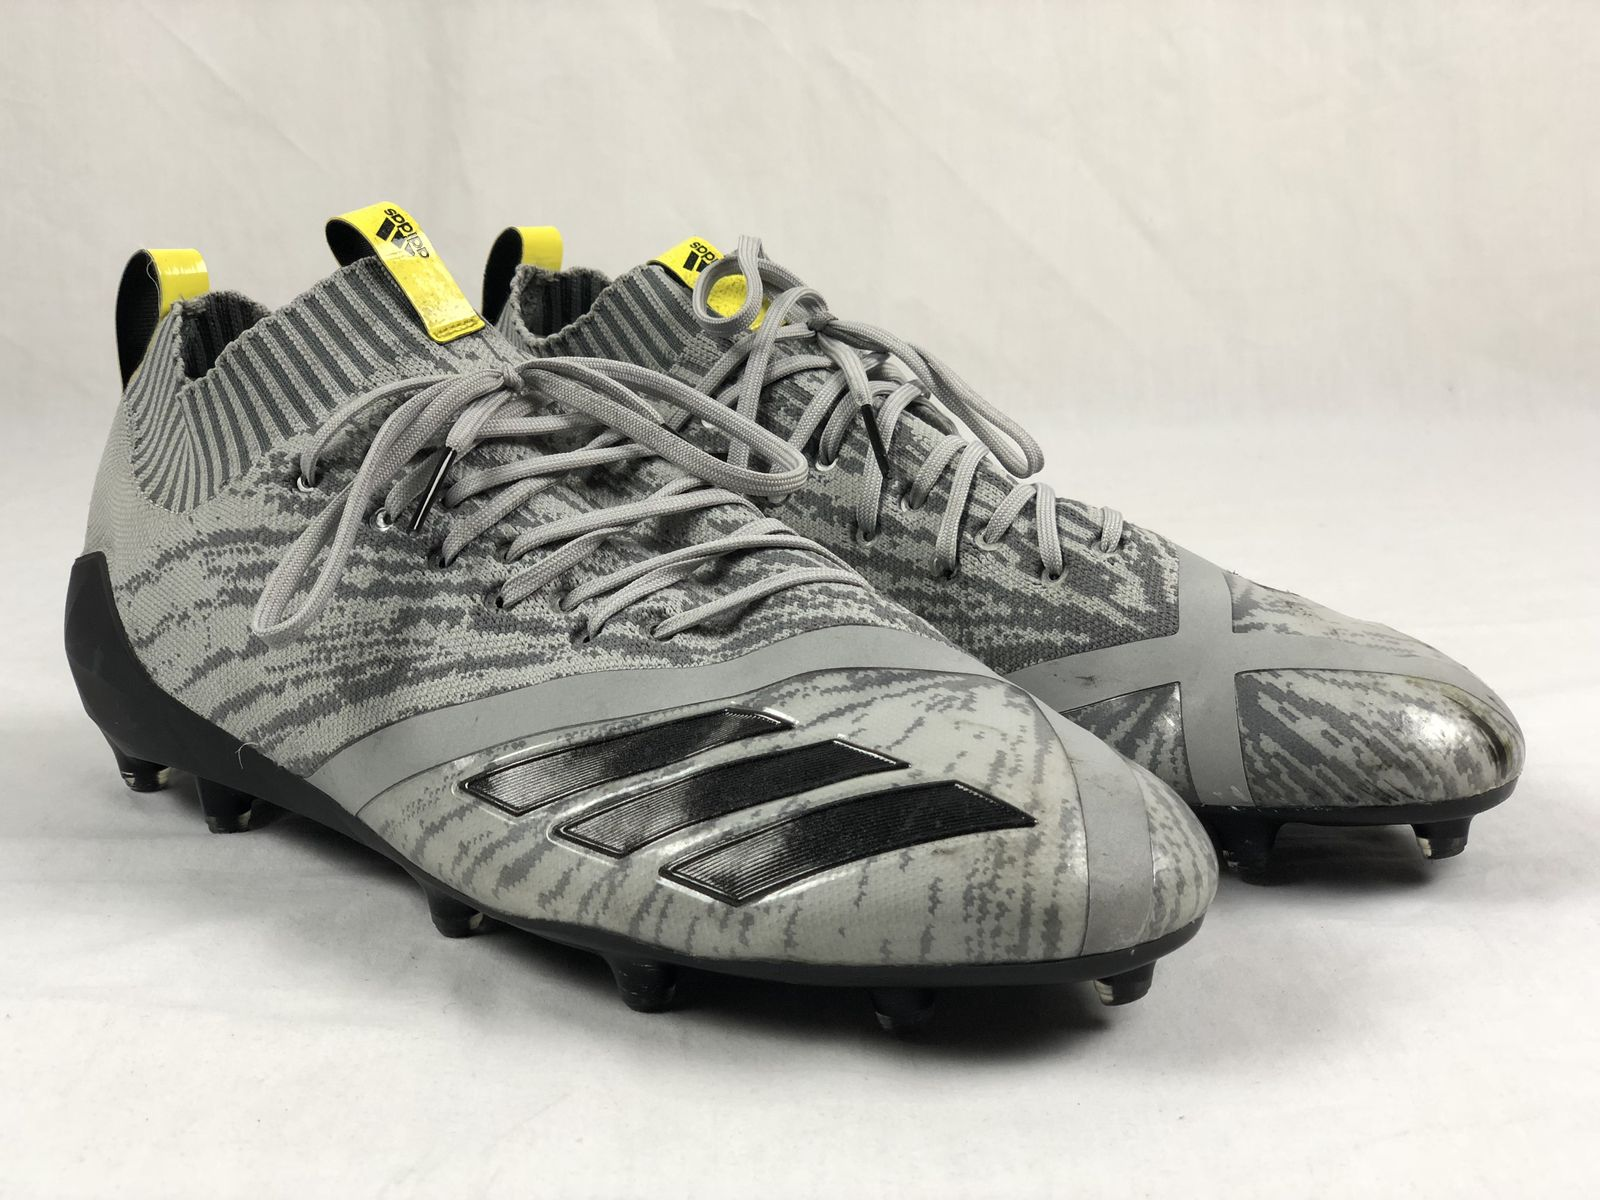 49ea13256 Details about adidas Adizero 5 star 7.0 Prime knit - Gray Cleats (Men s 15)  - Used